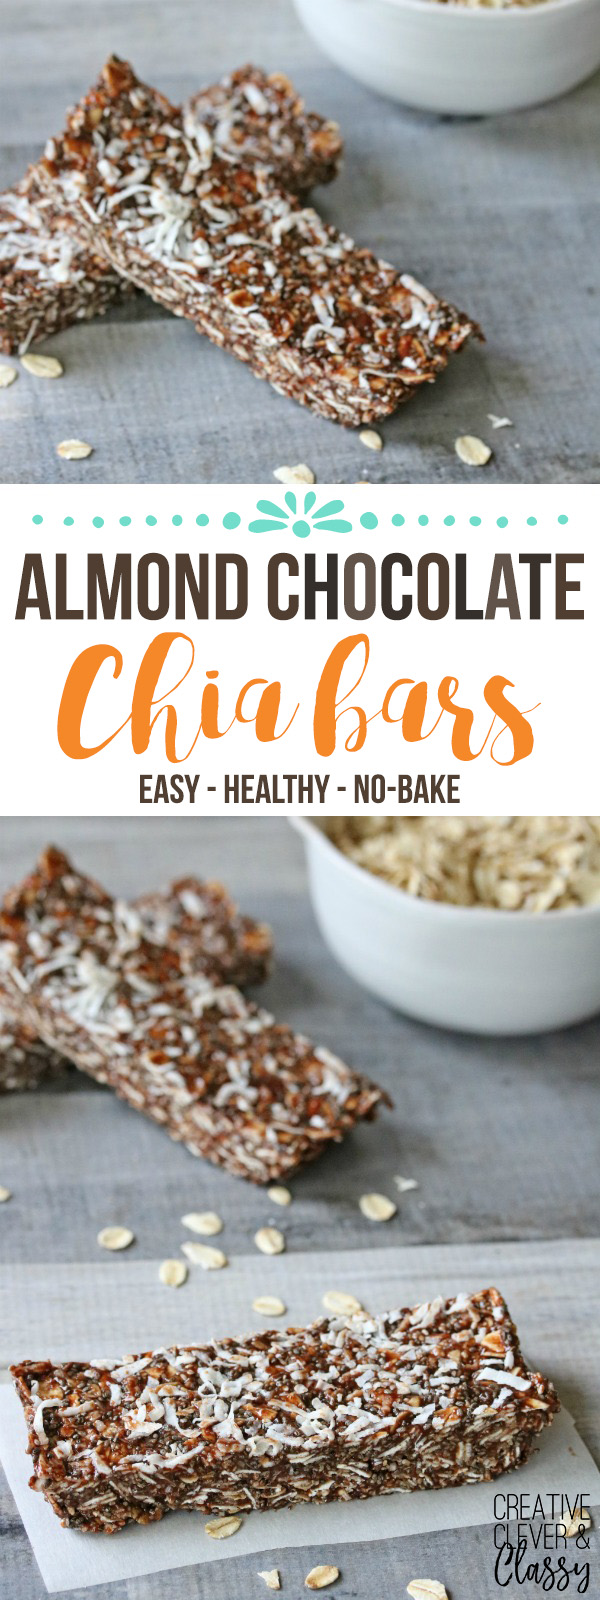 Create these easy, no-bake almond chocolate chia bars - great for a healthy snack! There is also a protein option for an extra strong boost of energy.